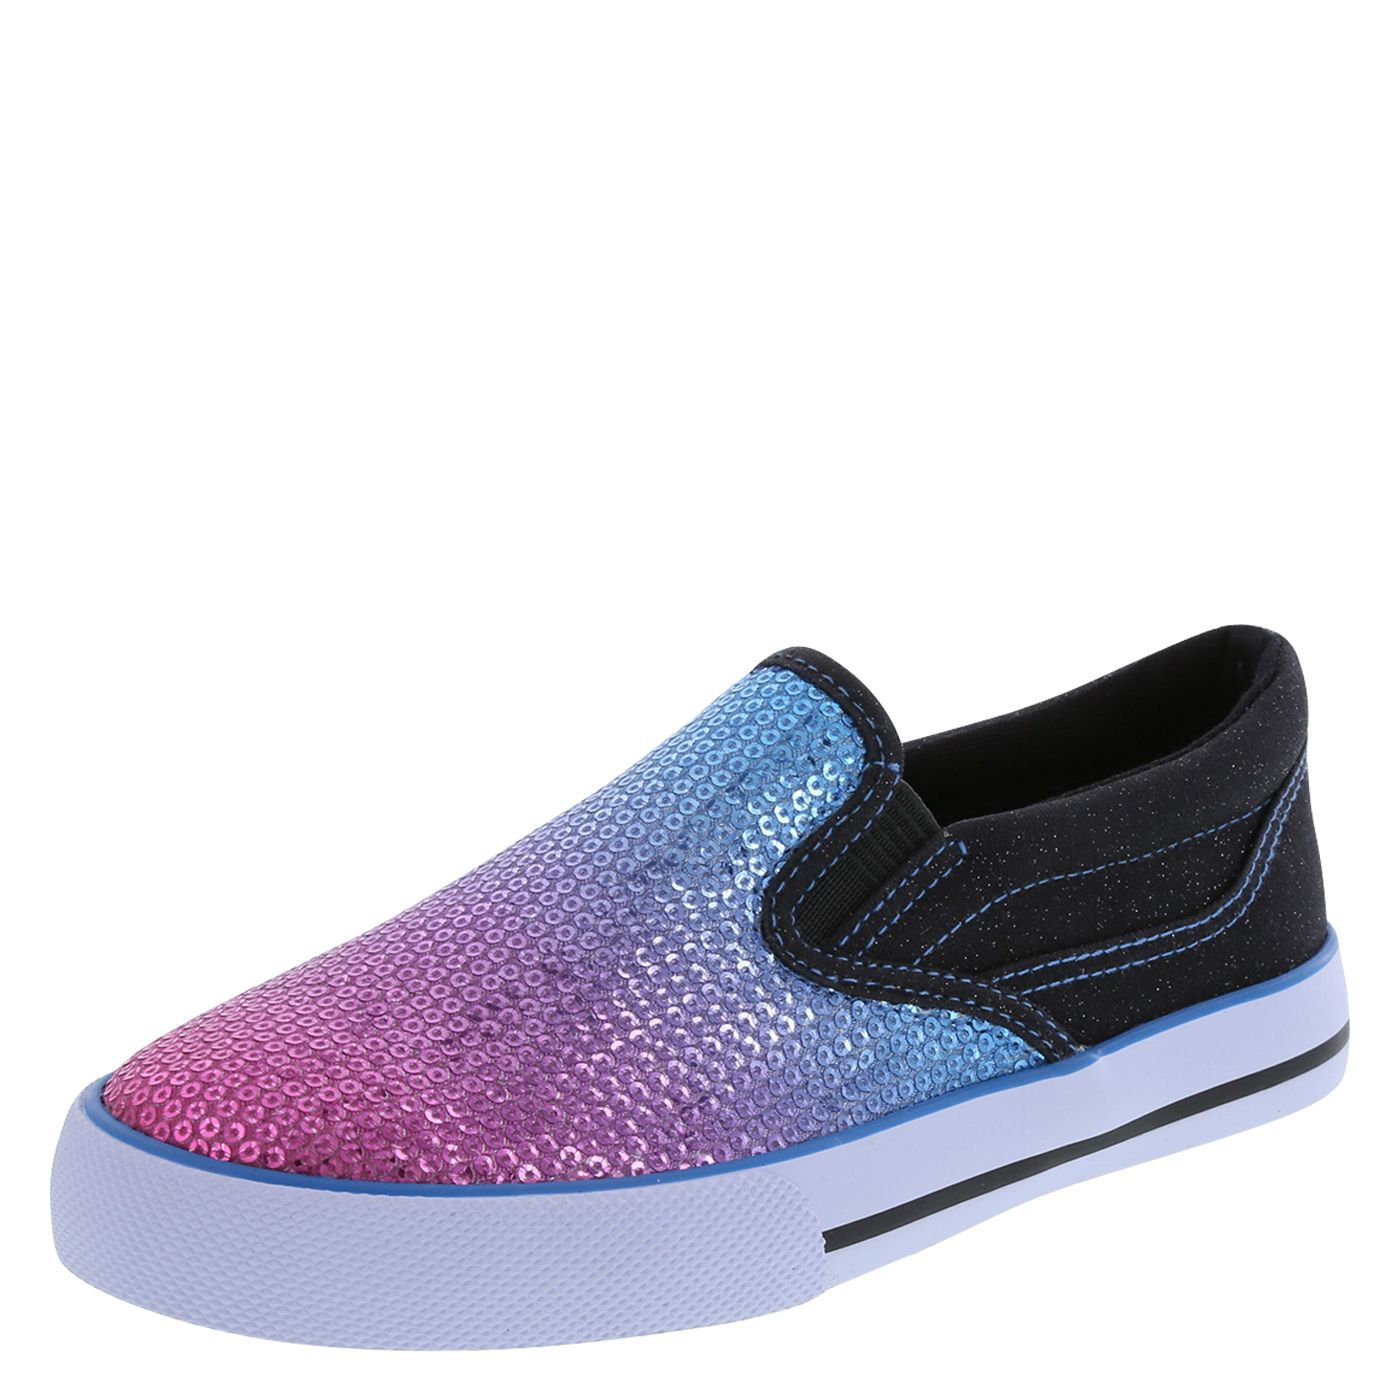 Roller shoes payless - Girls Ombre Sequin Slip On Payless Shoesource